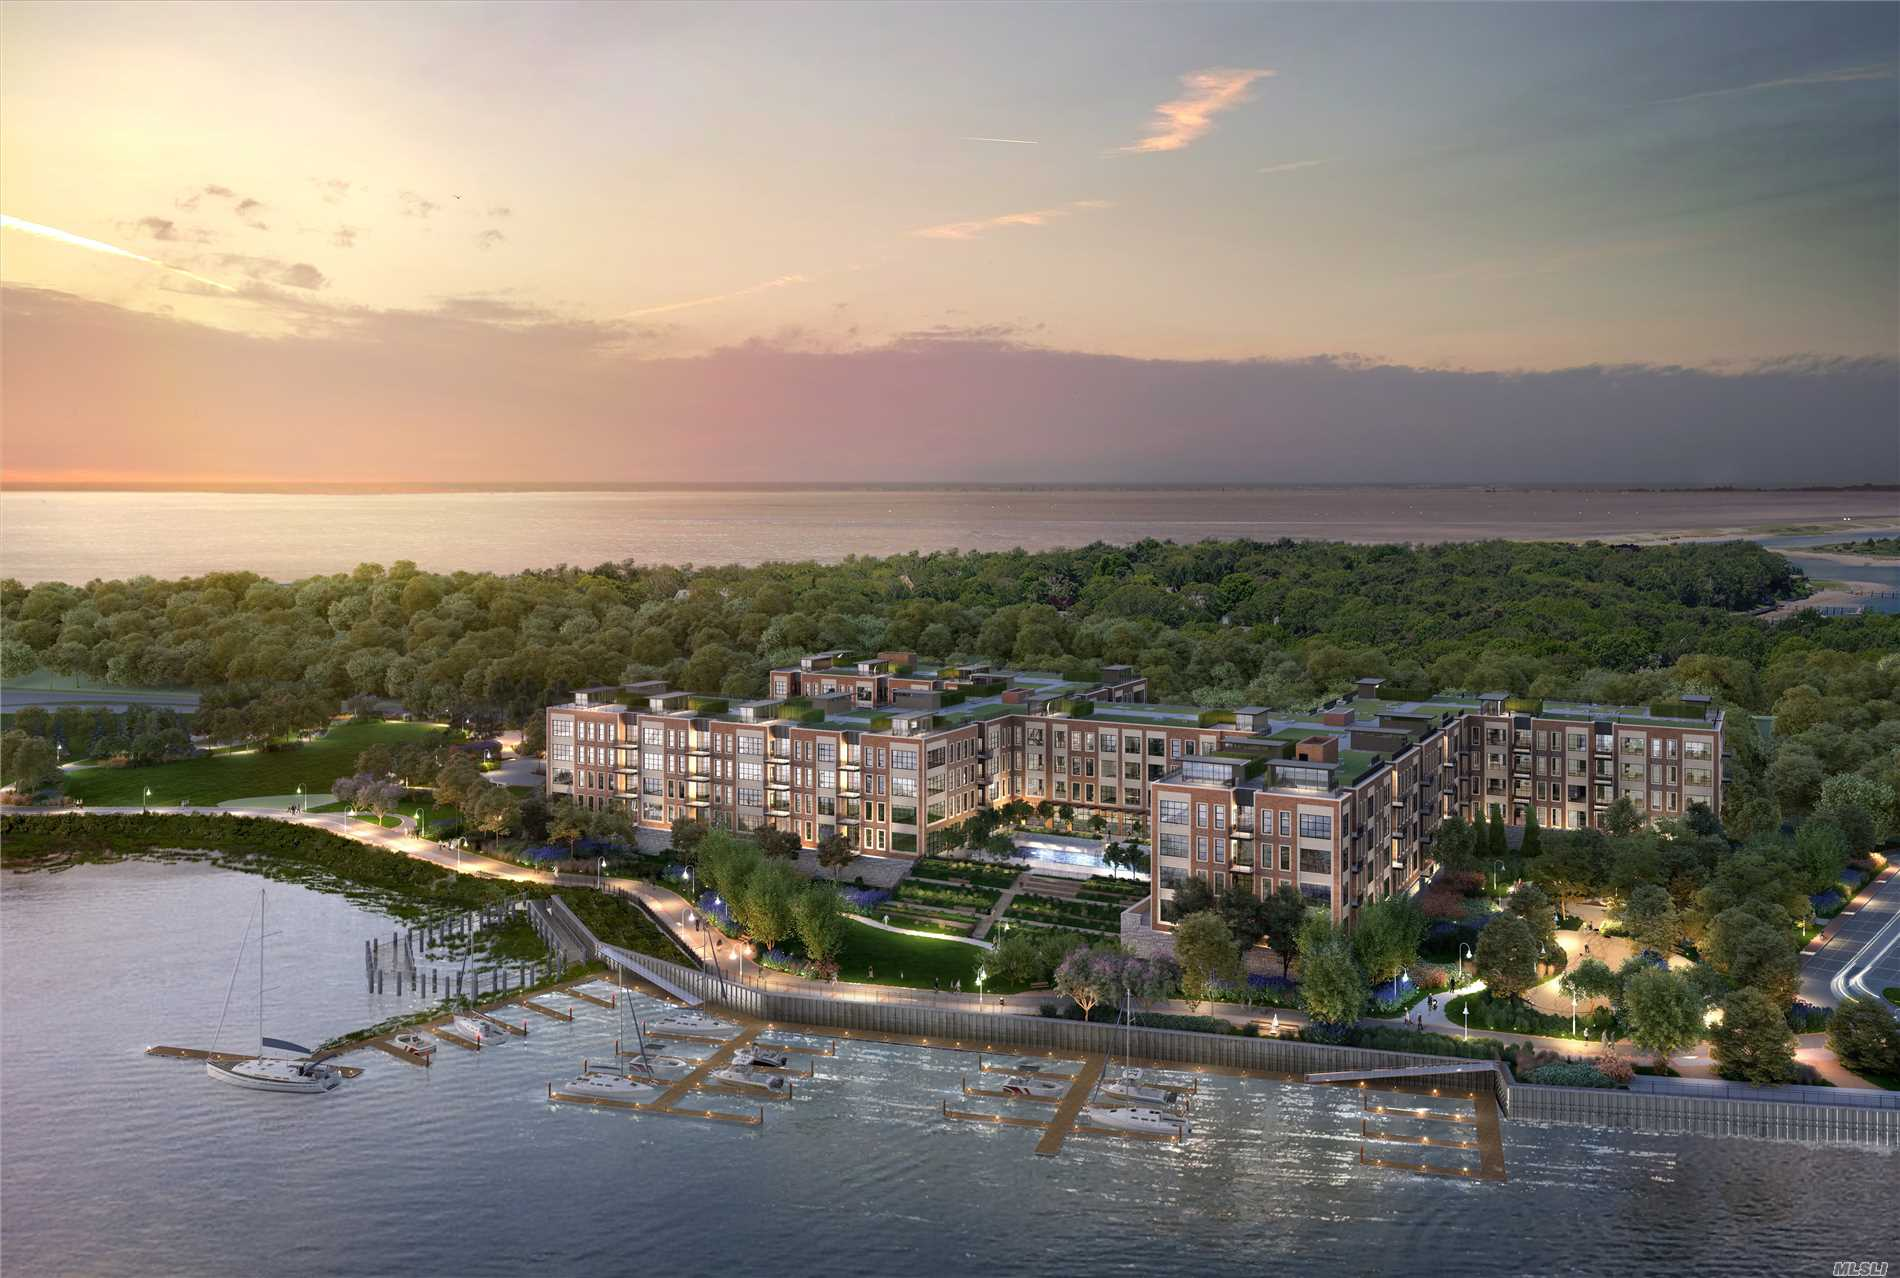 Property for sale at 100 Garvies Point Rd Road # 1105, Glen Cove NY 11542, Glen Cove,  New York 11542